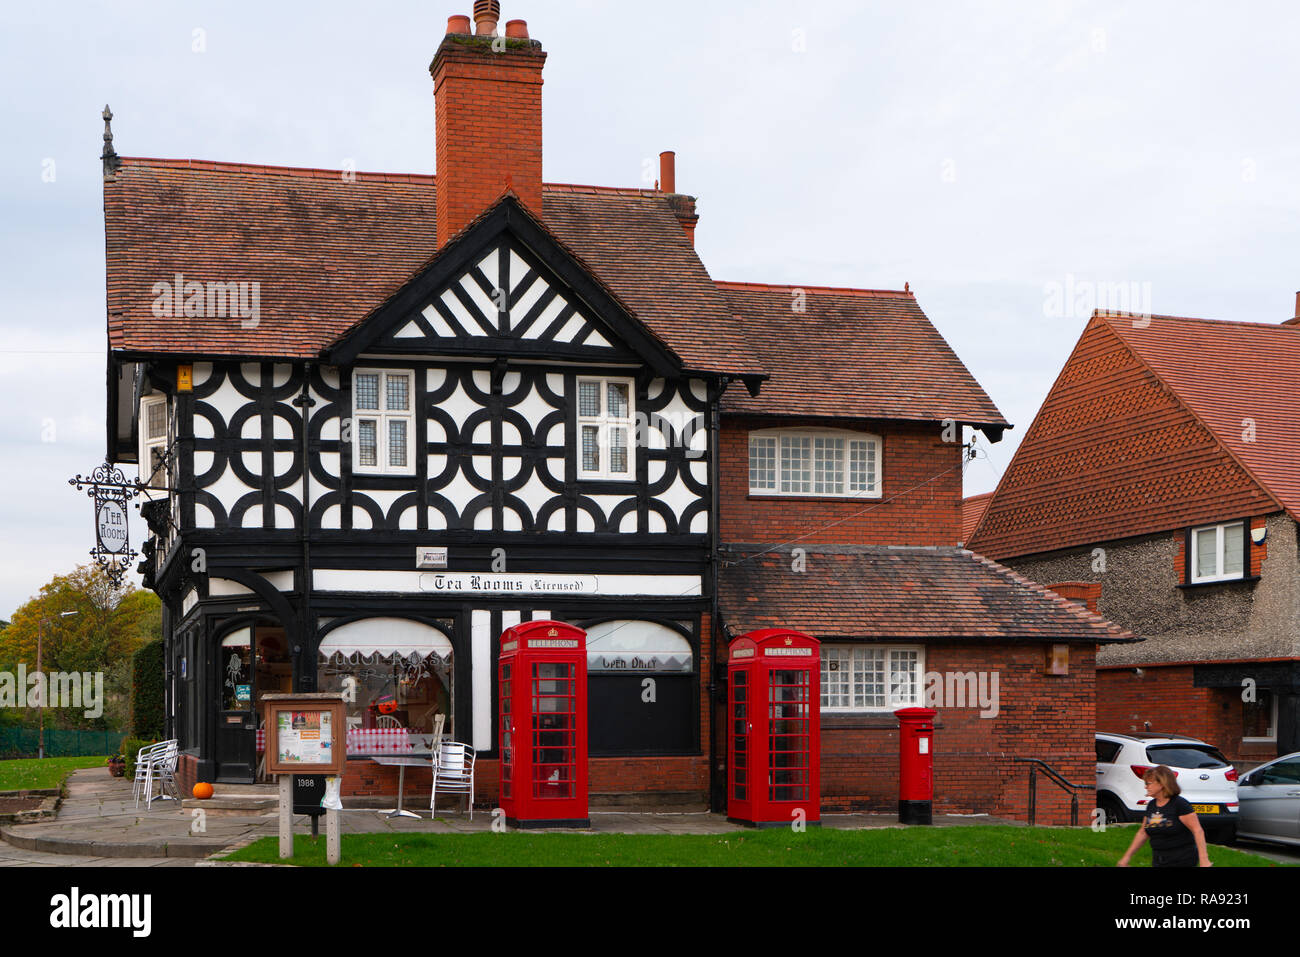 Tea rooms, in Port Sunlight Village, on the Wirral. Image taken in October 2018. - Stock Image